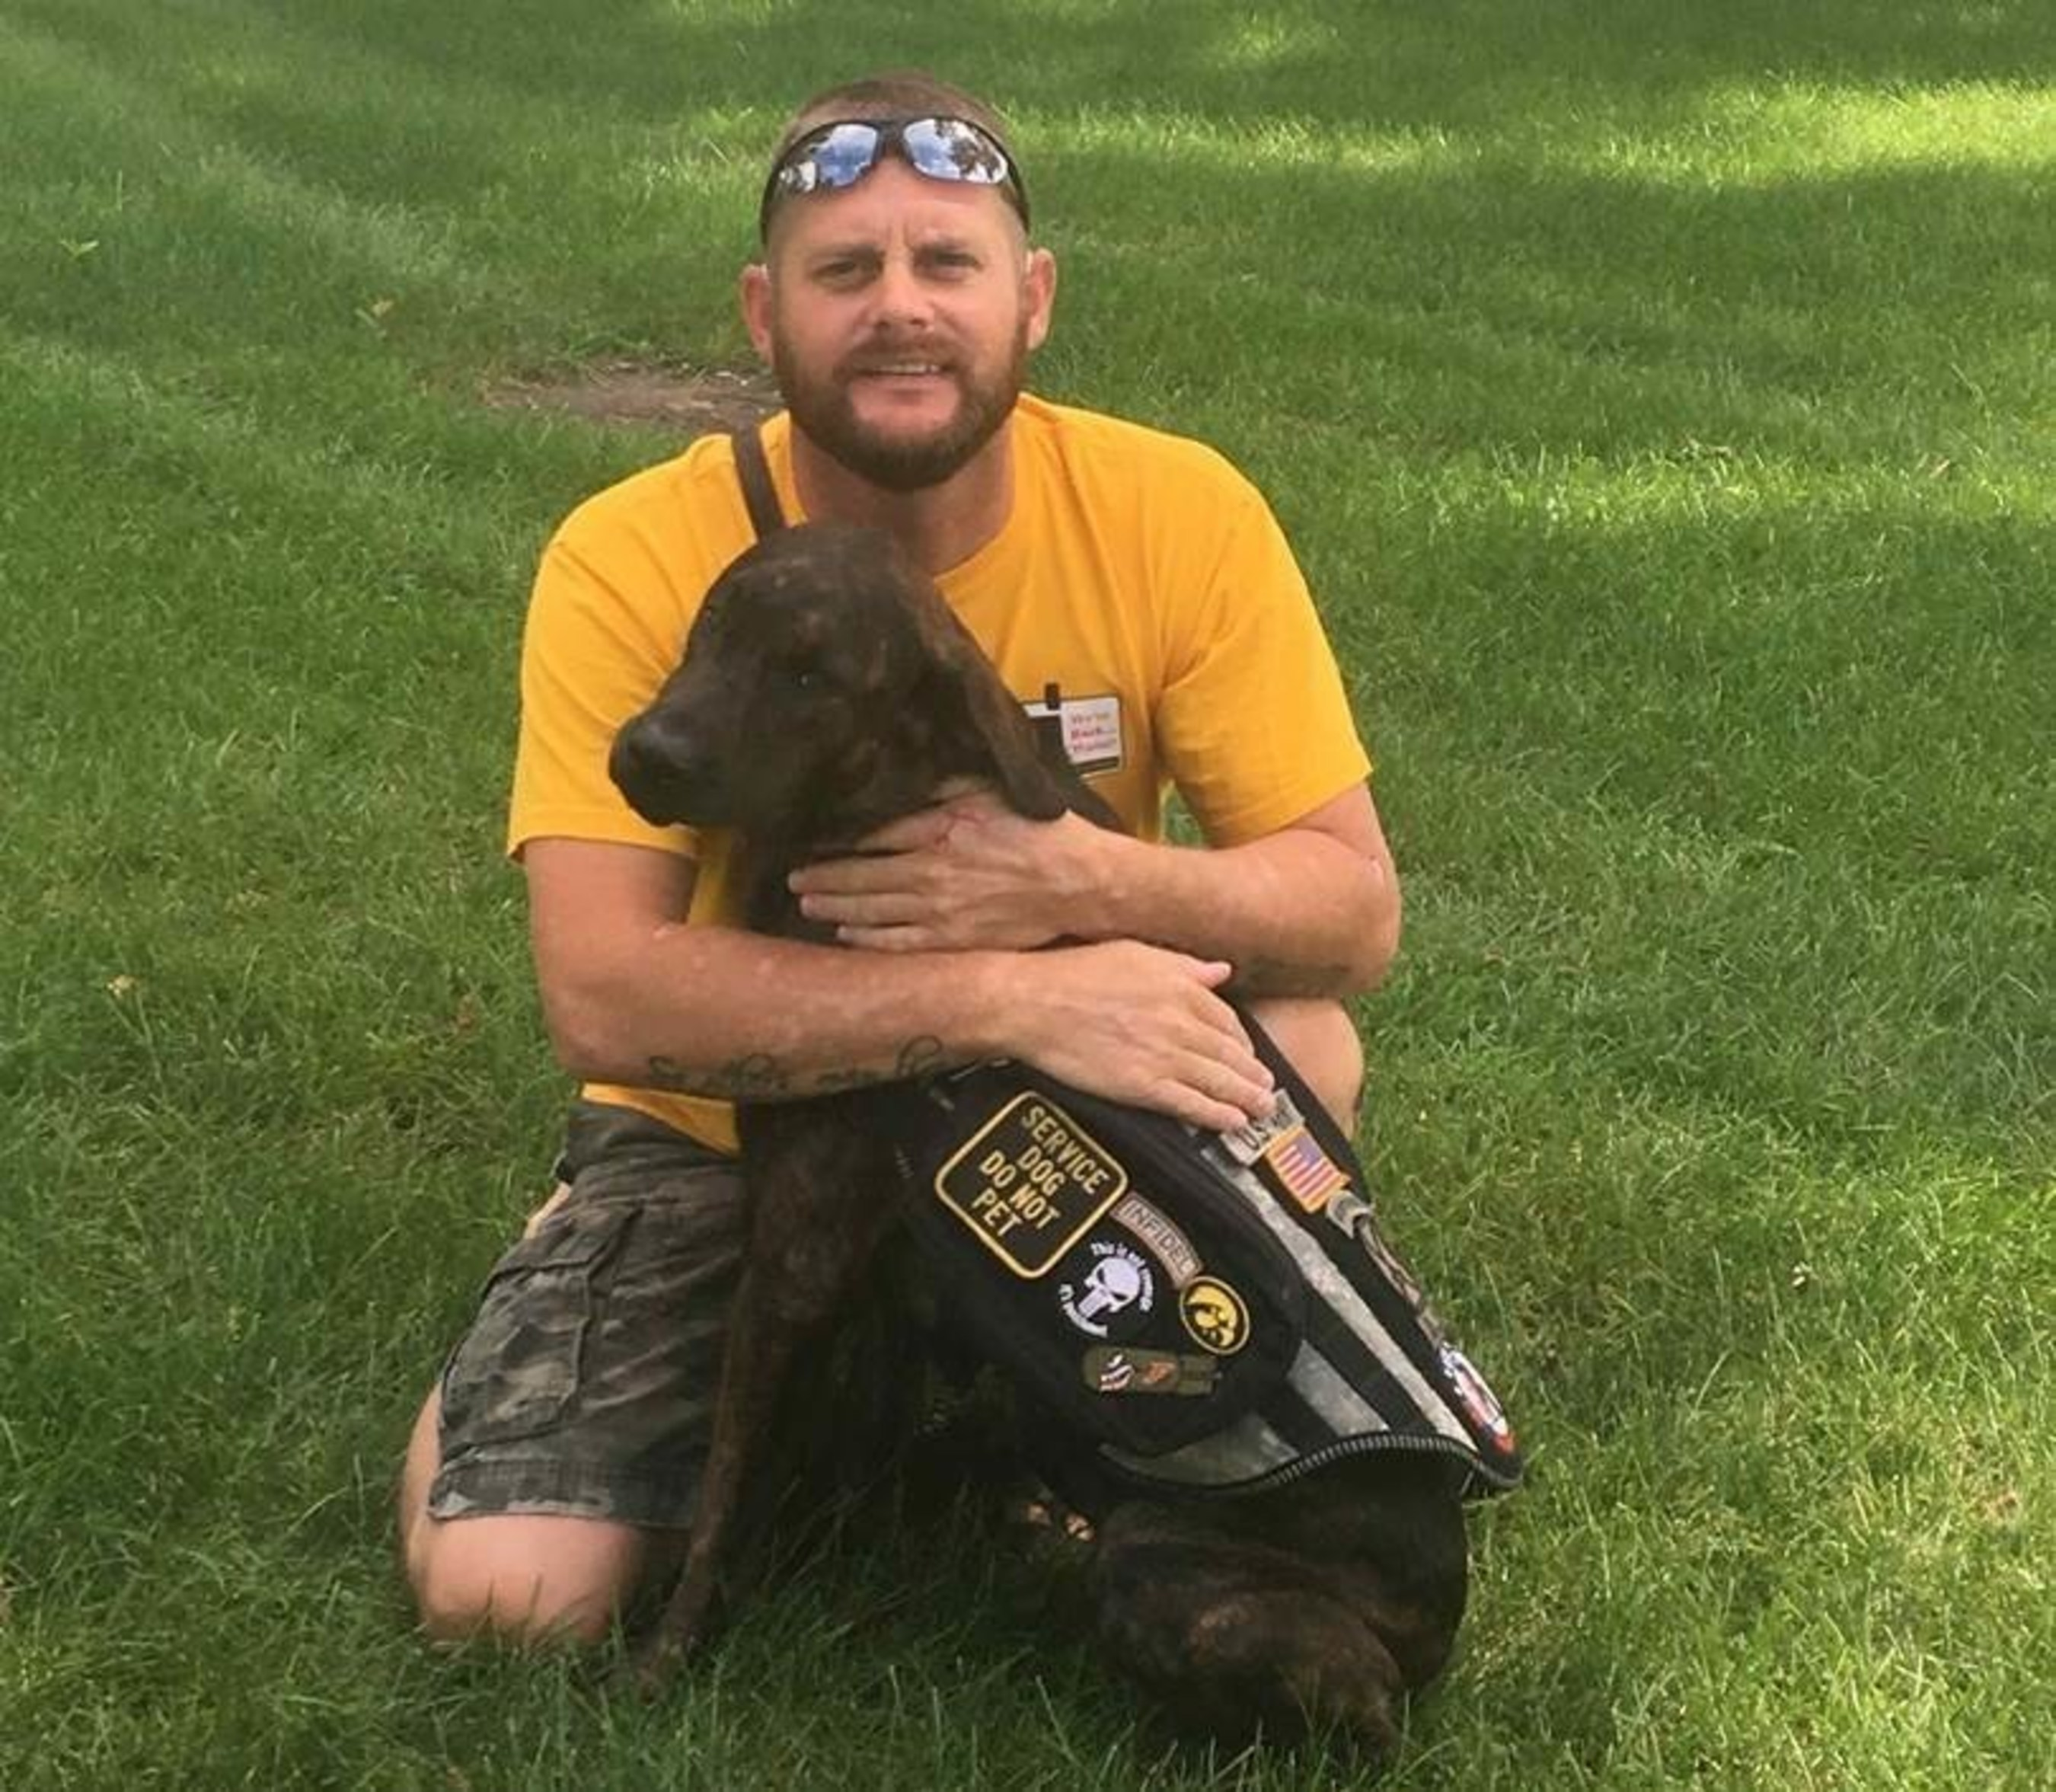 An Army veteran and former Navy rescue swimmer, who has overcome PTSD and other combat-related injuries thanks to his service dog, was one of the recipients of a new Tempur-Pedic bed through the PGA TOUR's military outreach initiative, Birdies for the Brave. His furry buddy also received his very own Tempur-Pedic dog bed.